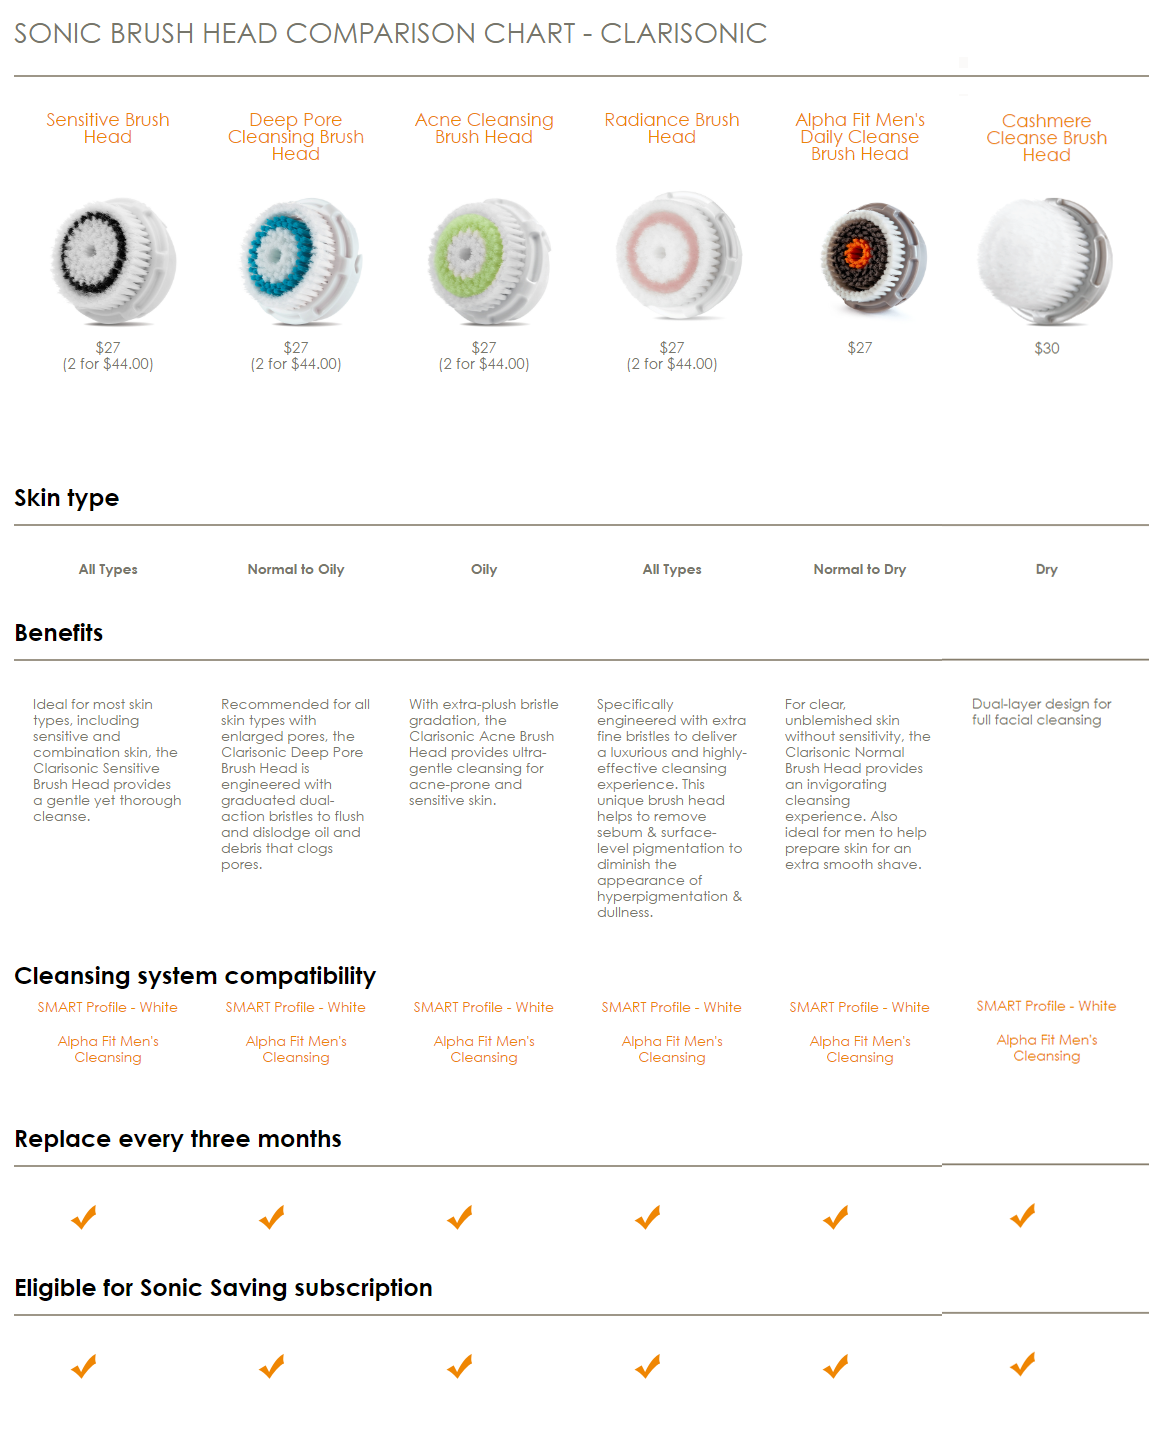 Clarisonic comparision charts lovelyskin brush heads comparison chart 1 of 2 nvjuhfo Choice Image